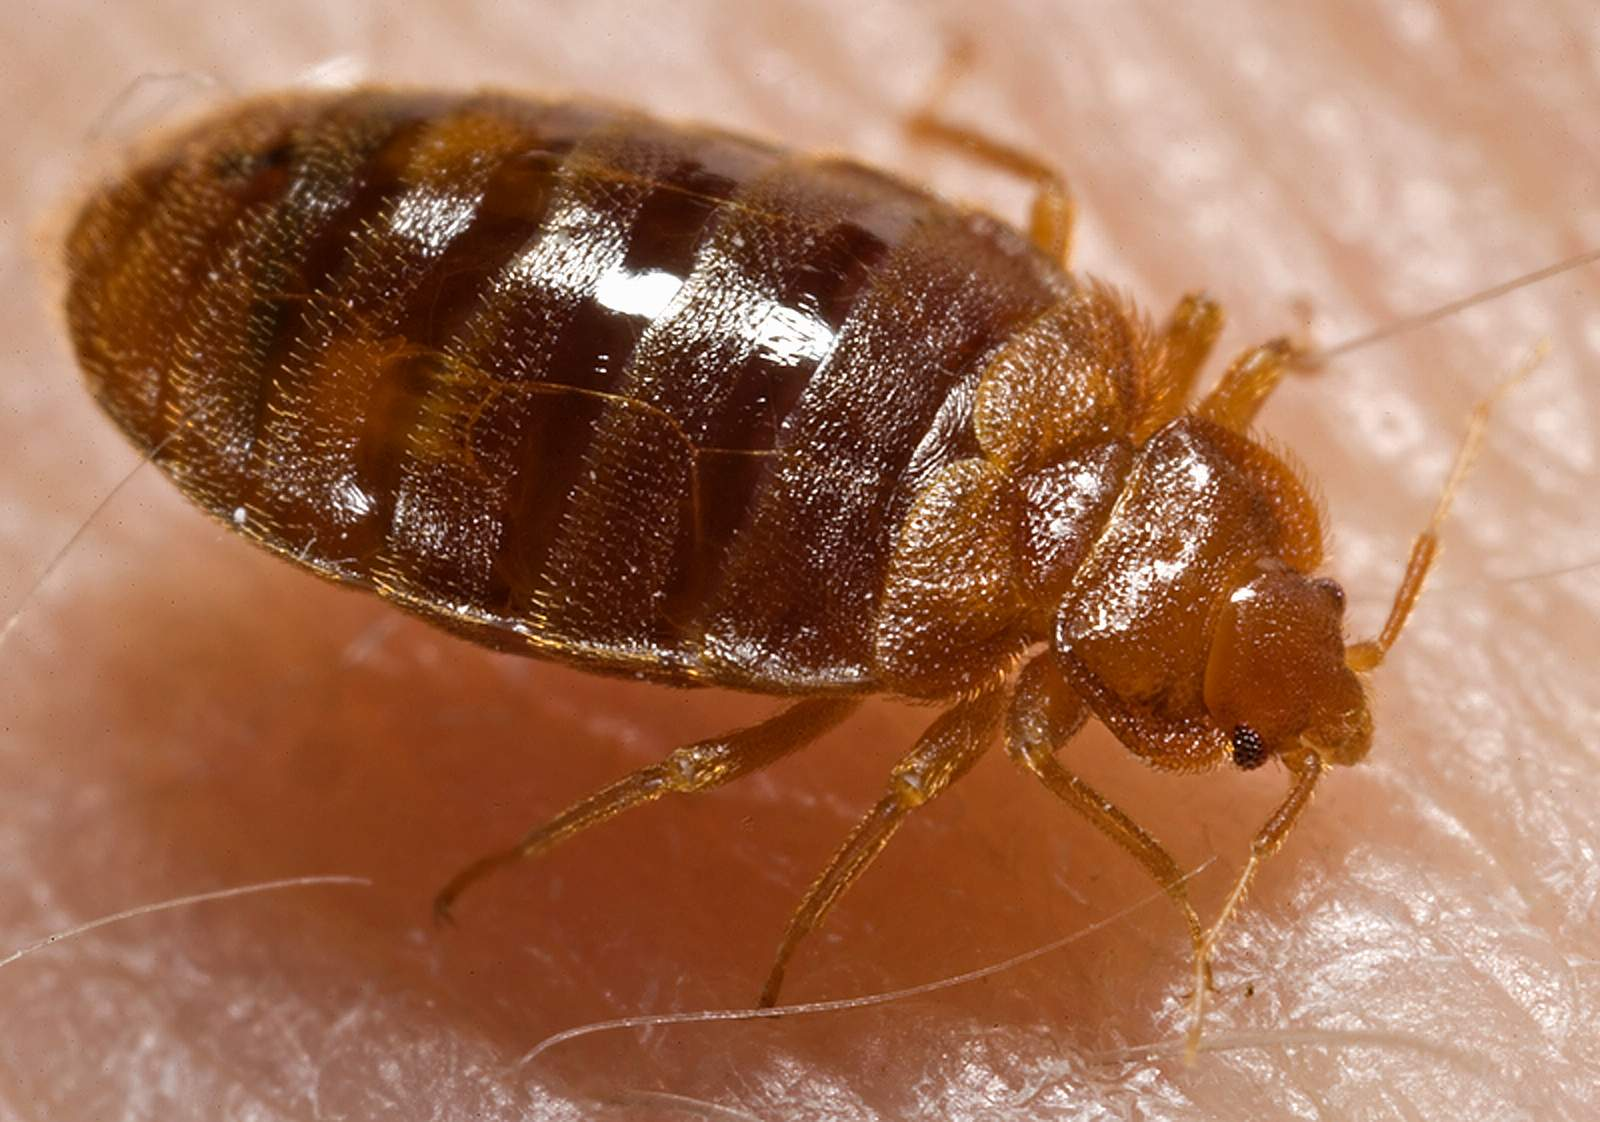 How To Get Rid Of Red Bugs Naturally